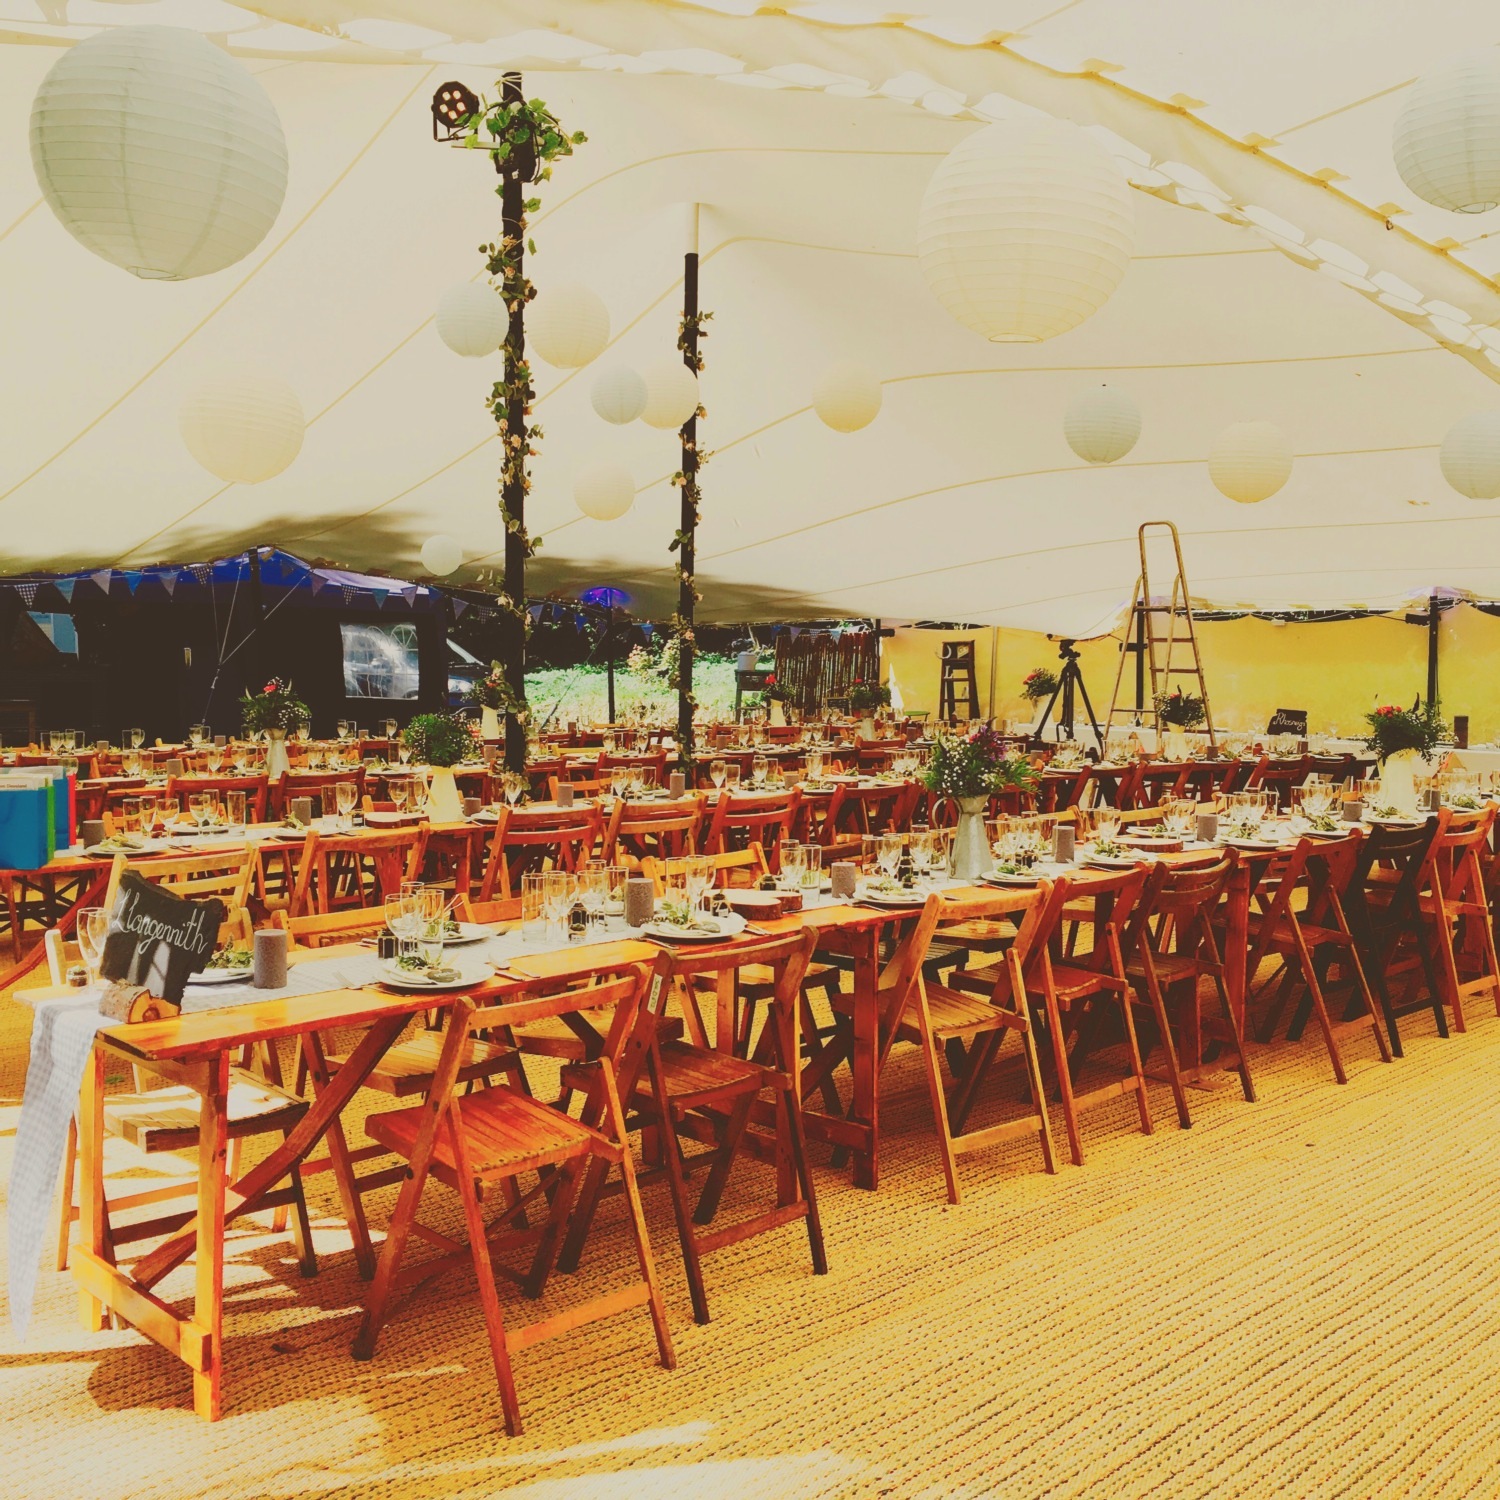 Our vintage chairs and solid wooden tables complement the decor of the tent nicely.